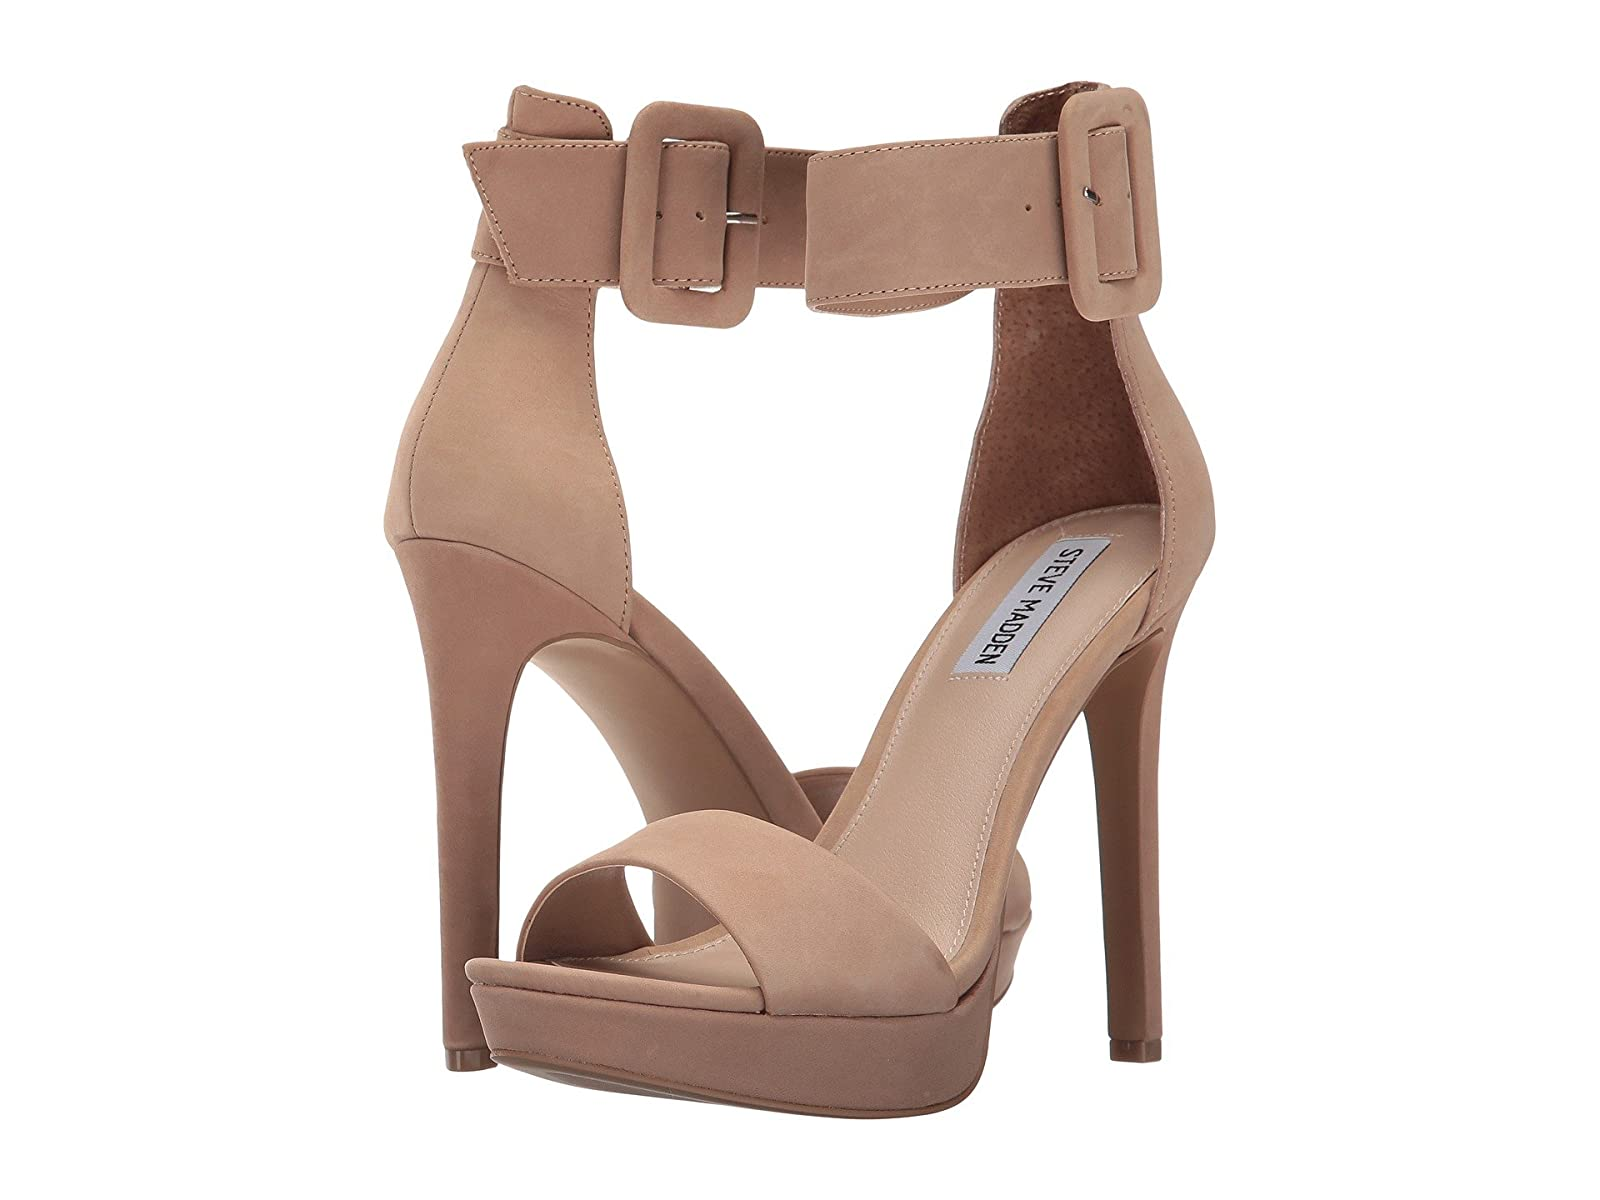 Steve Madden CircuitCheap and distinctive eye-catching shoes